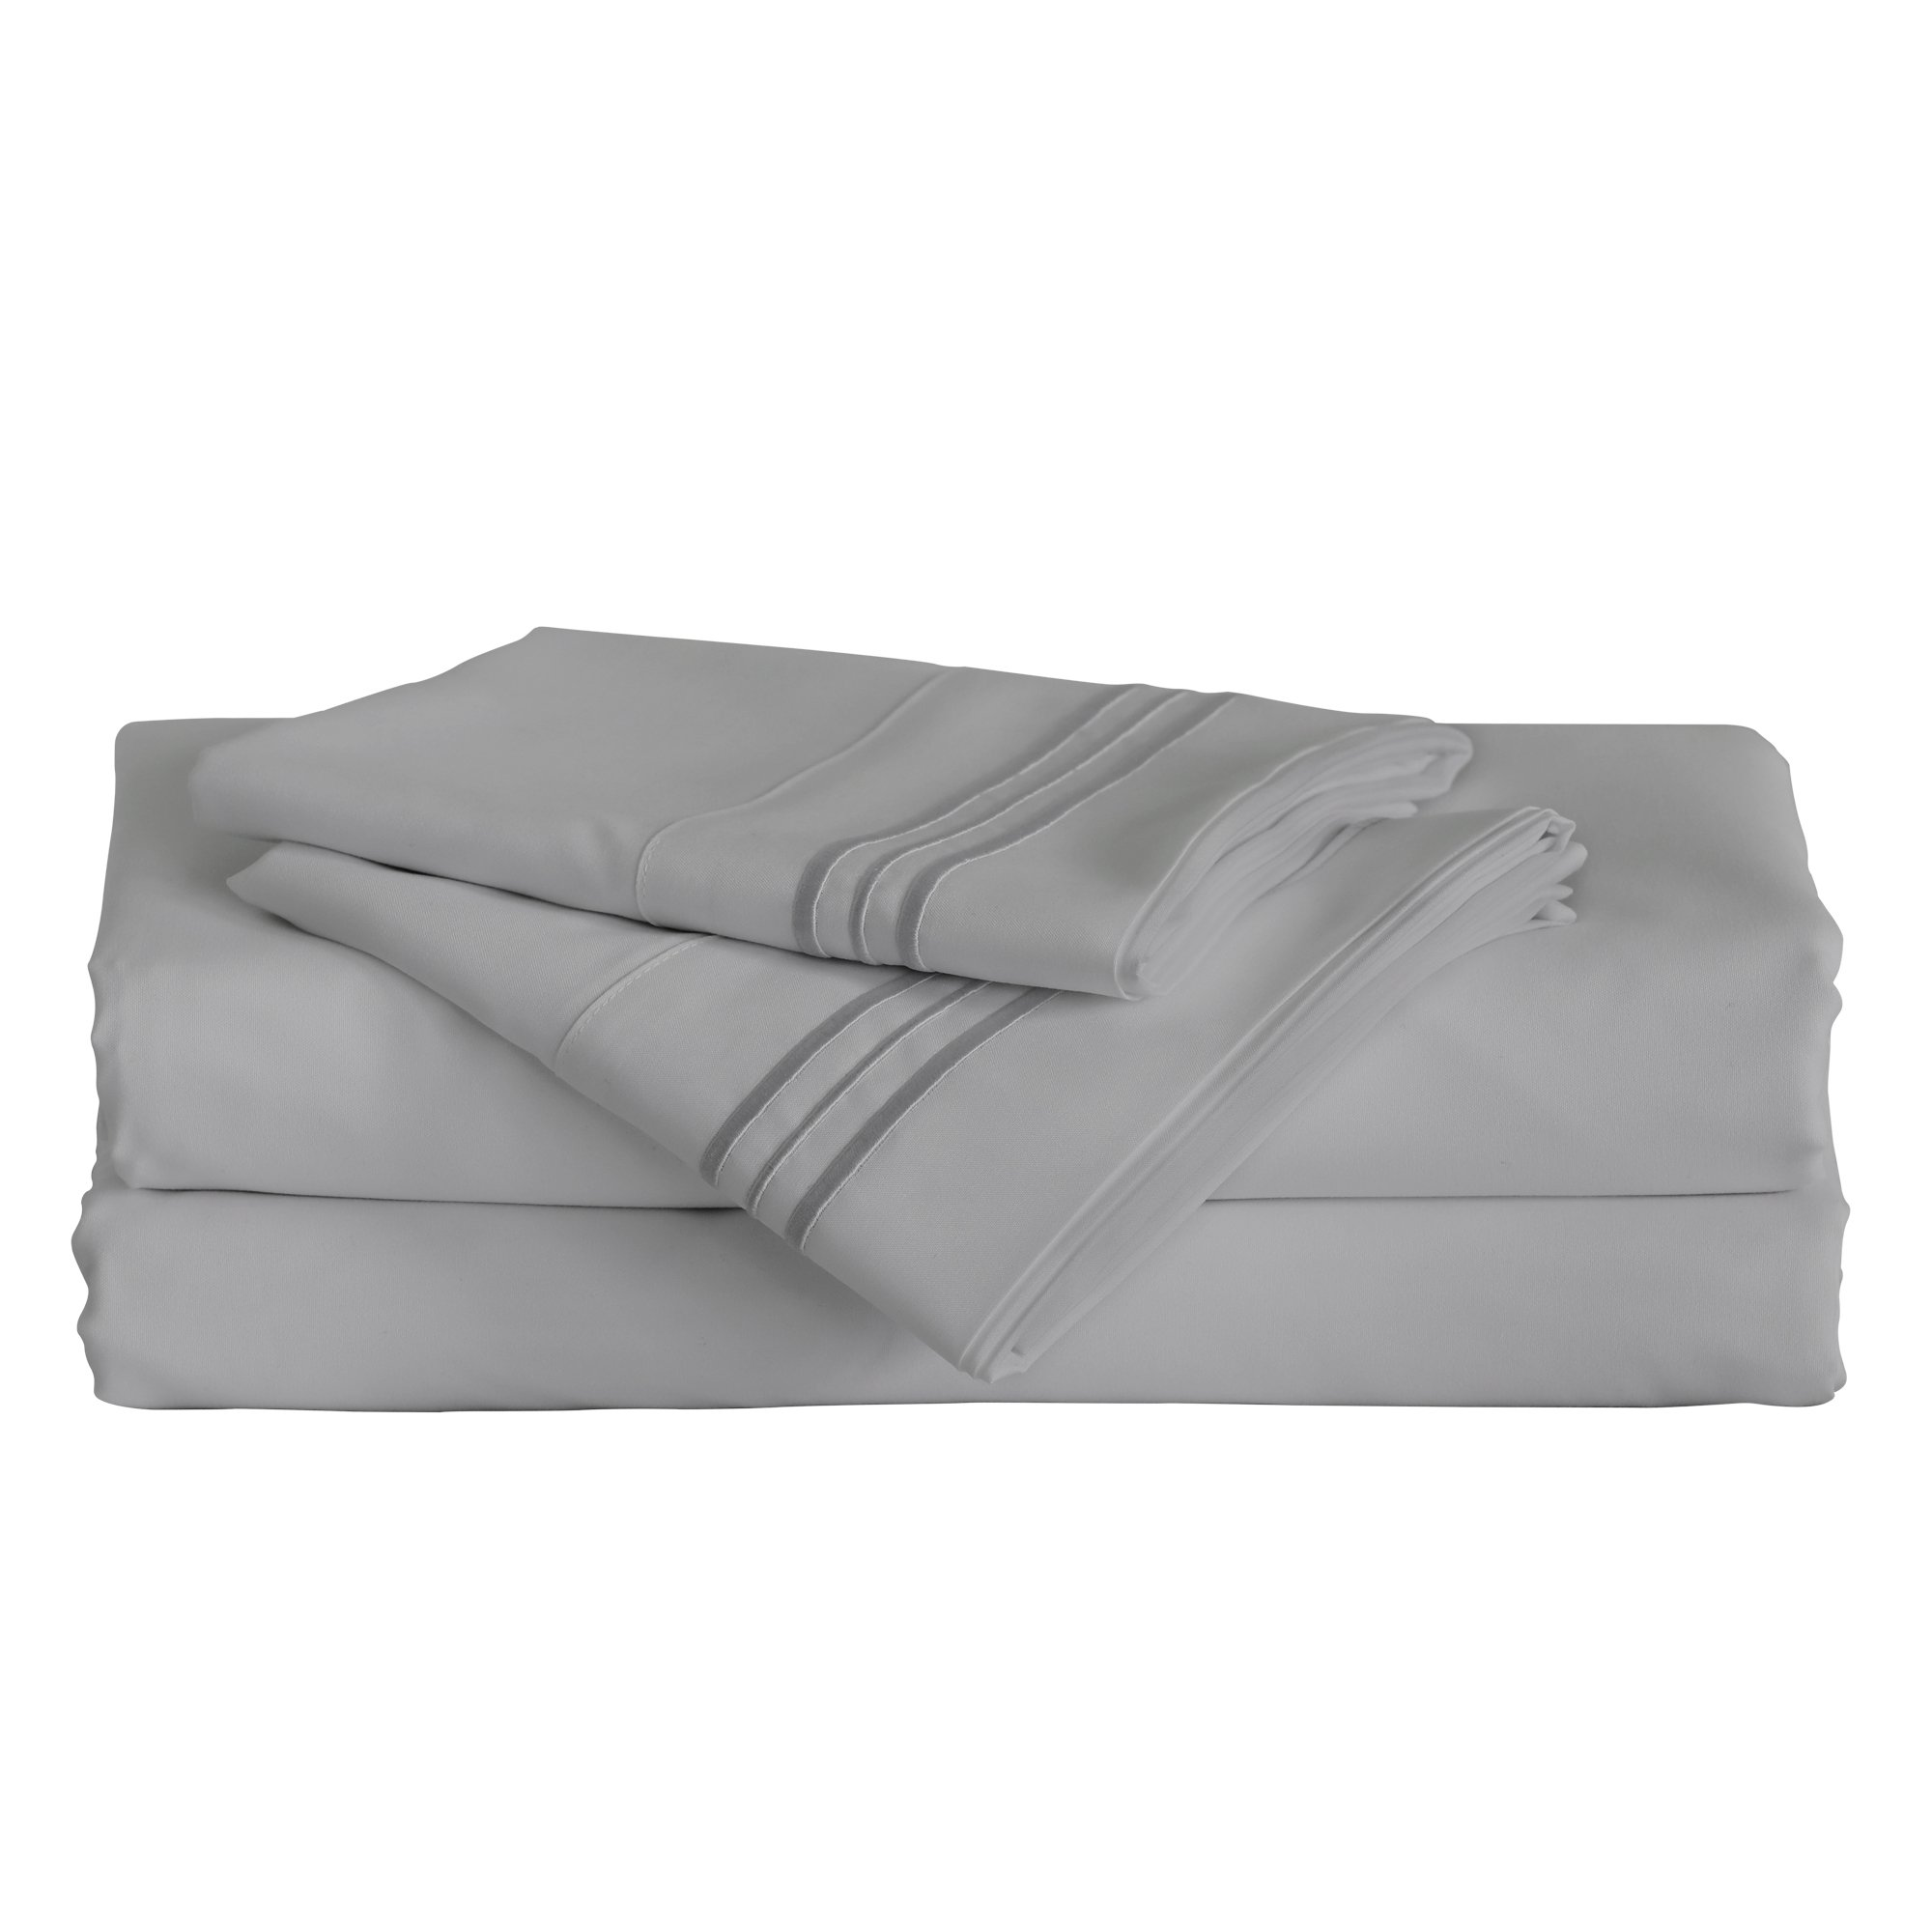 Furinno Angeland Vienne (3 Piece) Microfiber Bed Sheet and Pillowcase Set, Twin, Grey